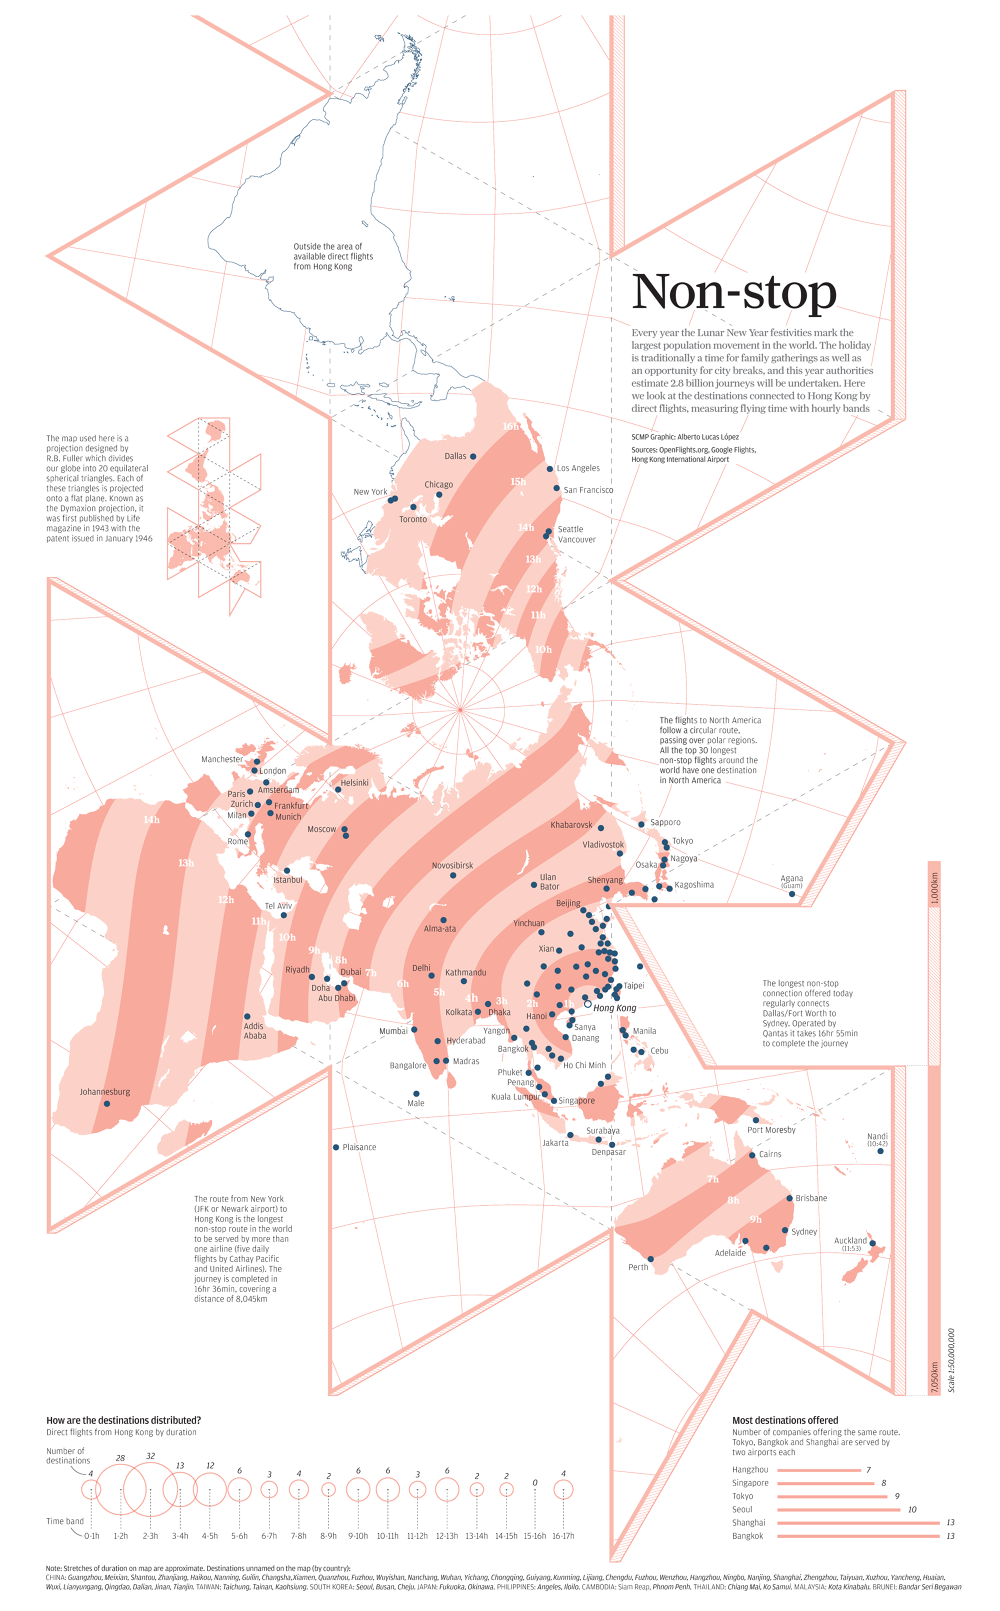 Dymaxion map lucasinfografia gumiabroncs Image collections